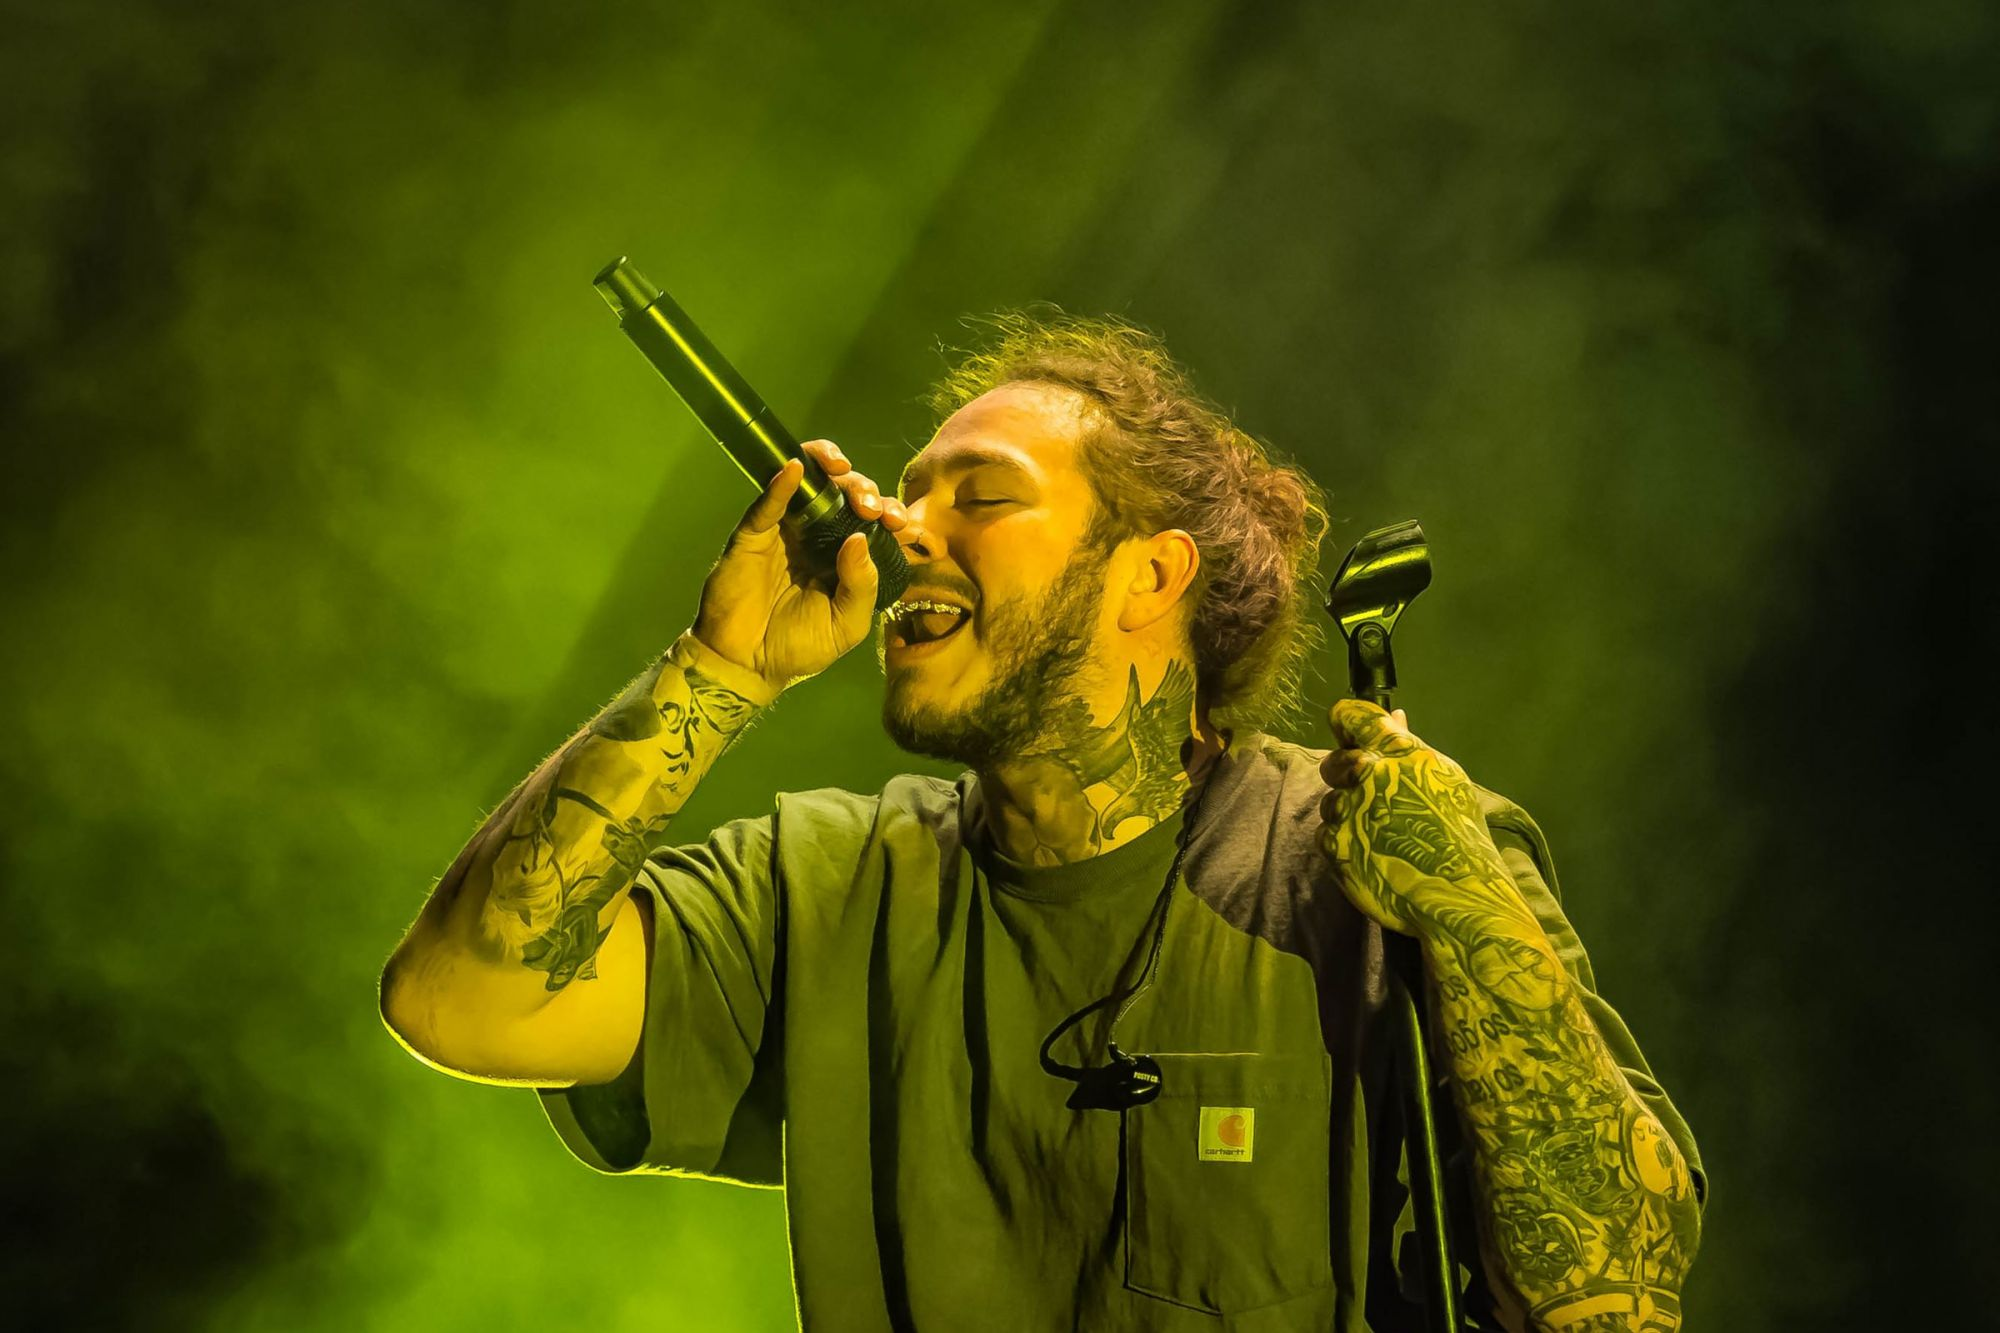 Post Malone Launches Shaboink Hemp Pre-Rolls and Announces Partnership With Icon Farms and Sherbinskis